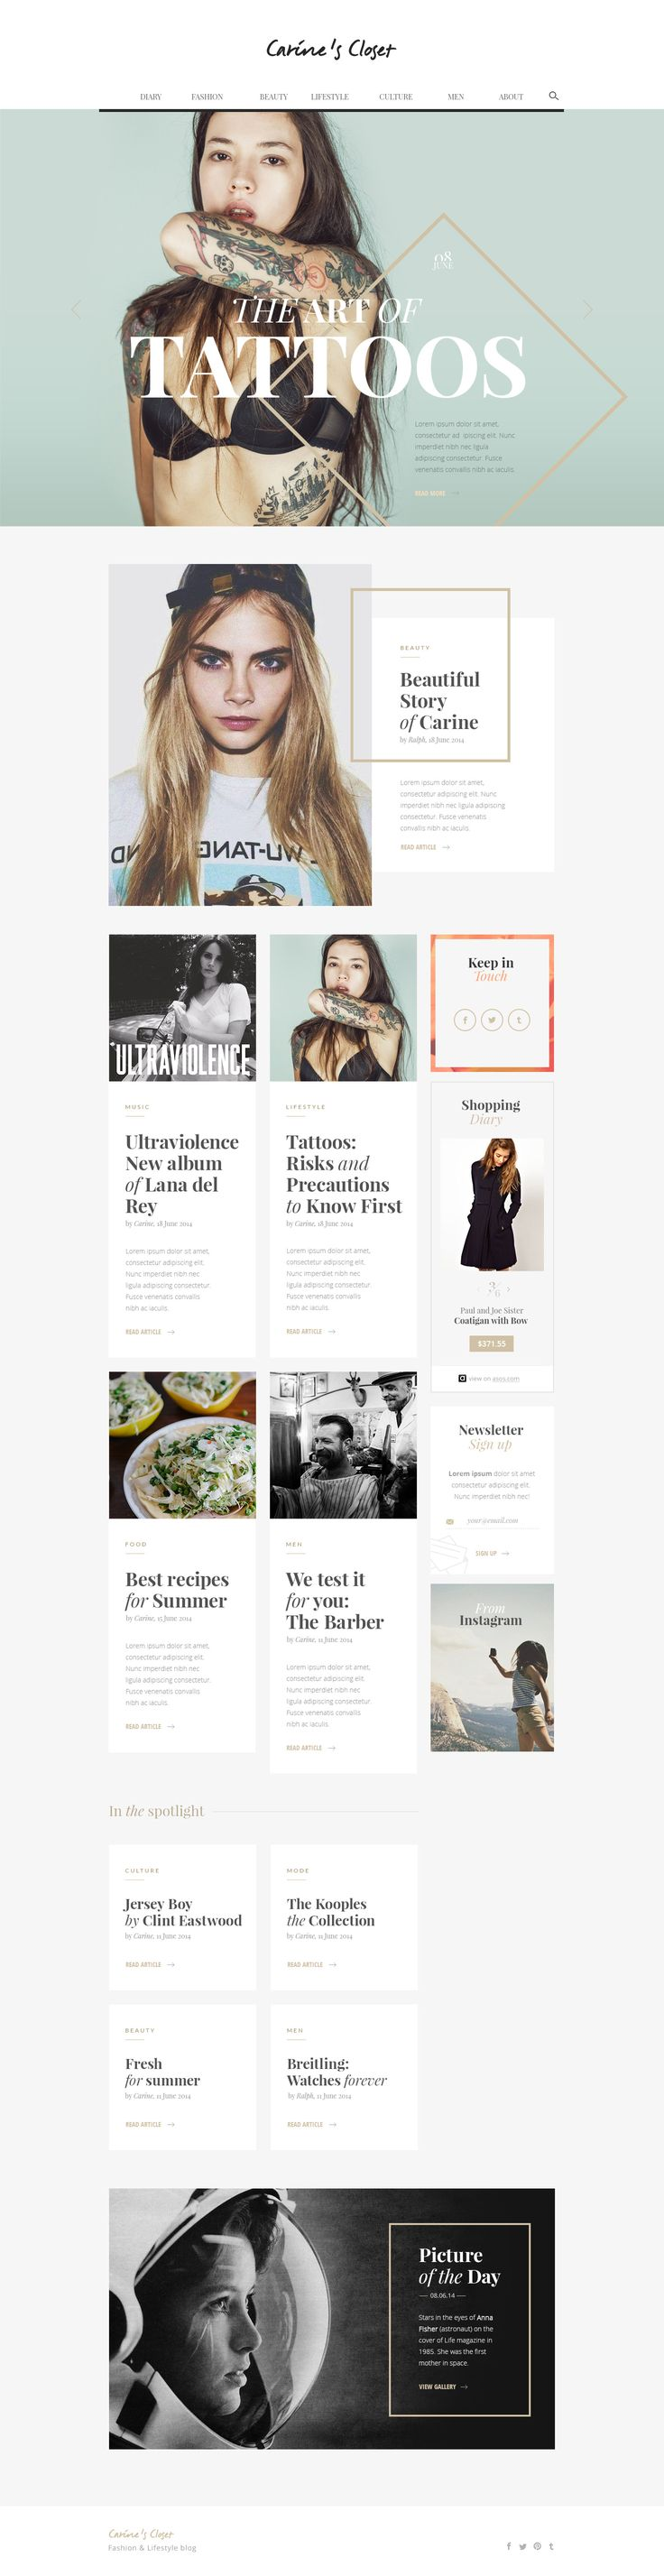 17 Best ideas about Newsletter Layout on Pinterest | Newsletter ...